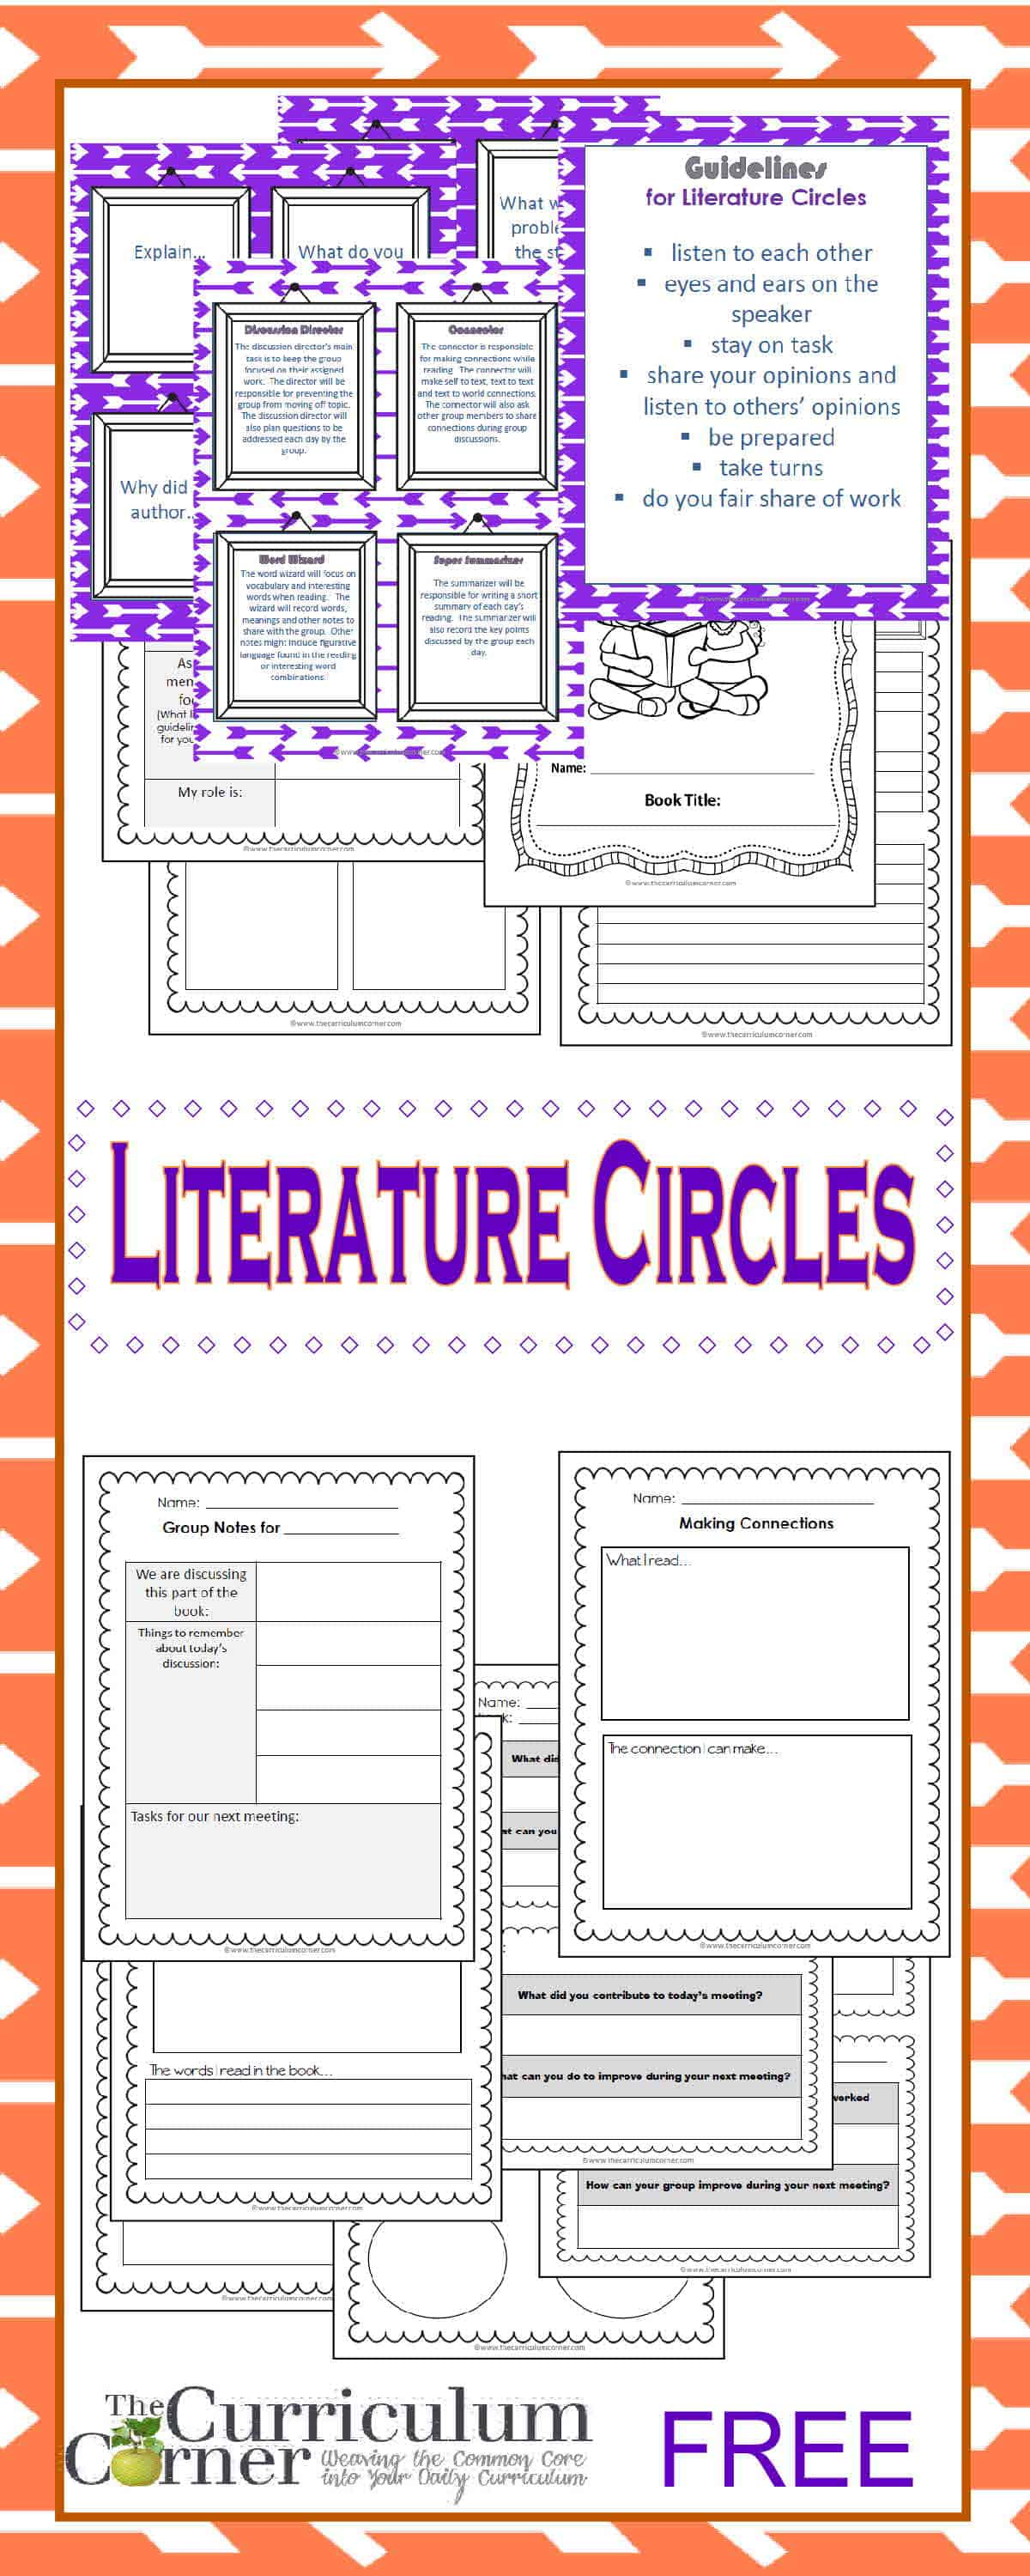 Literature Circle Resources Free From The Curriculum